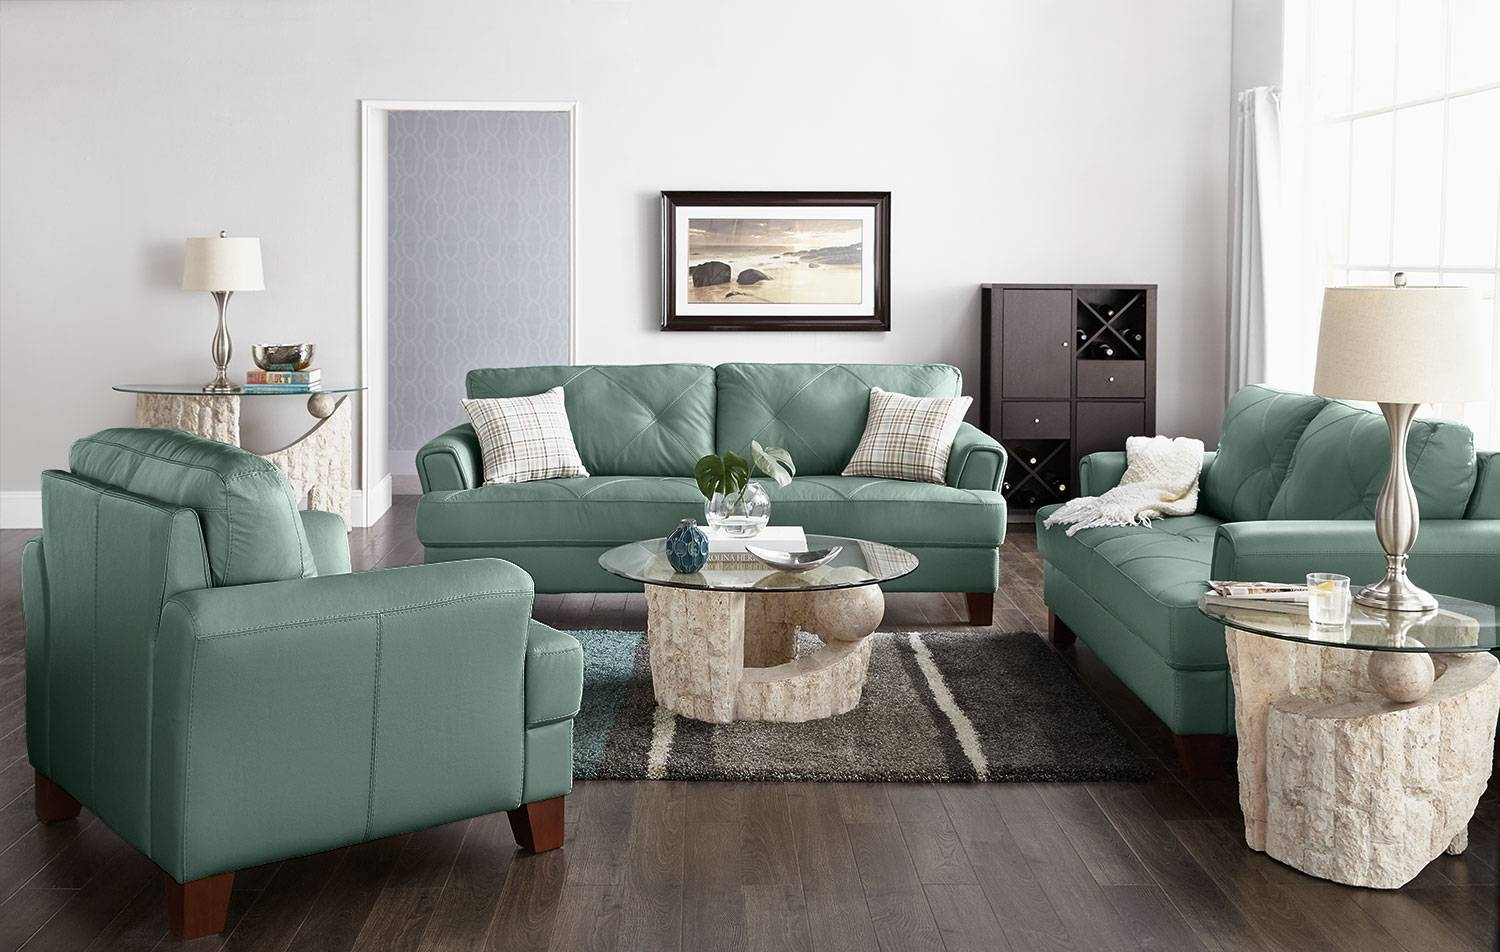 Vita 100% Genuine Leather Sofa – Sea Foam | The Brick within Seafoam Green Sofas (Image 15 of 15)